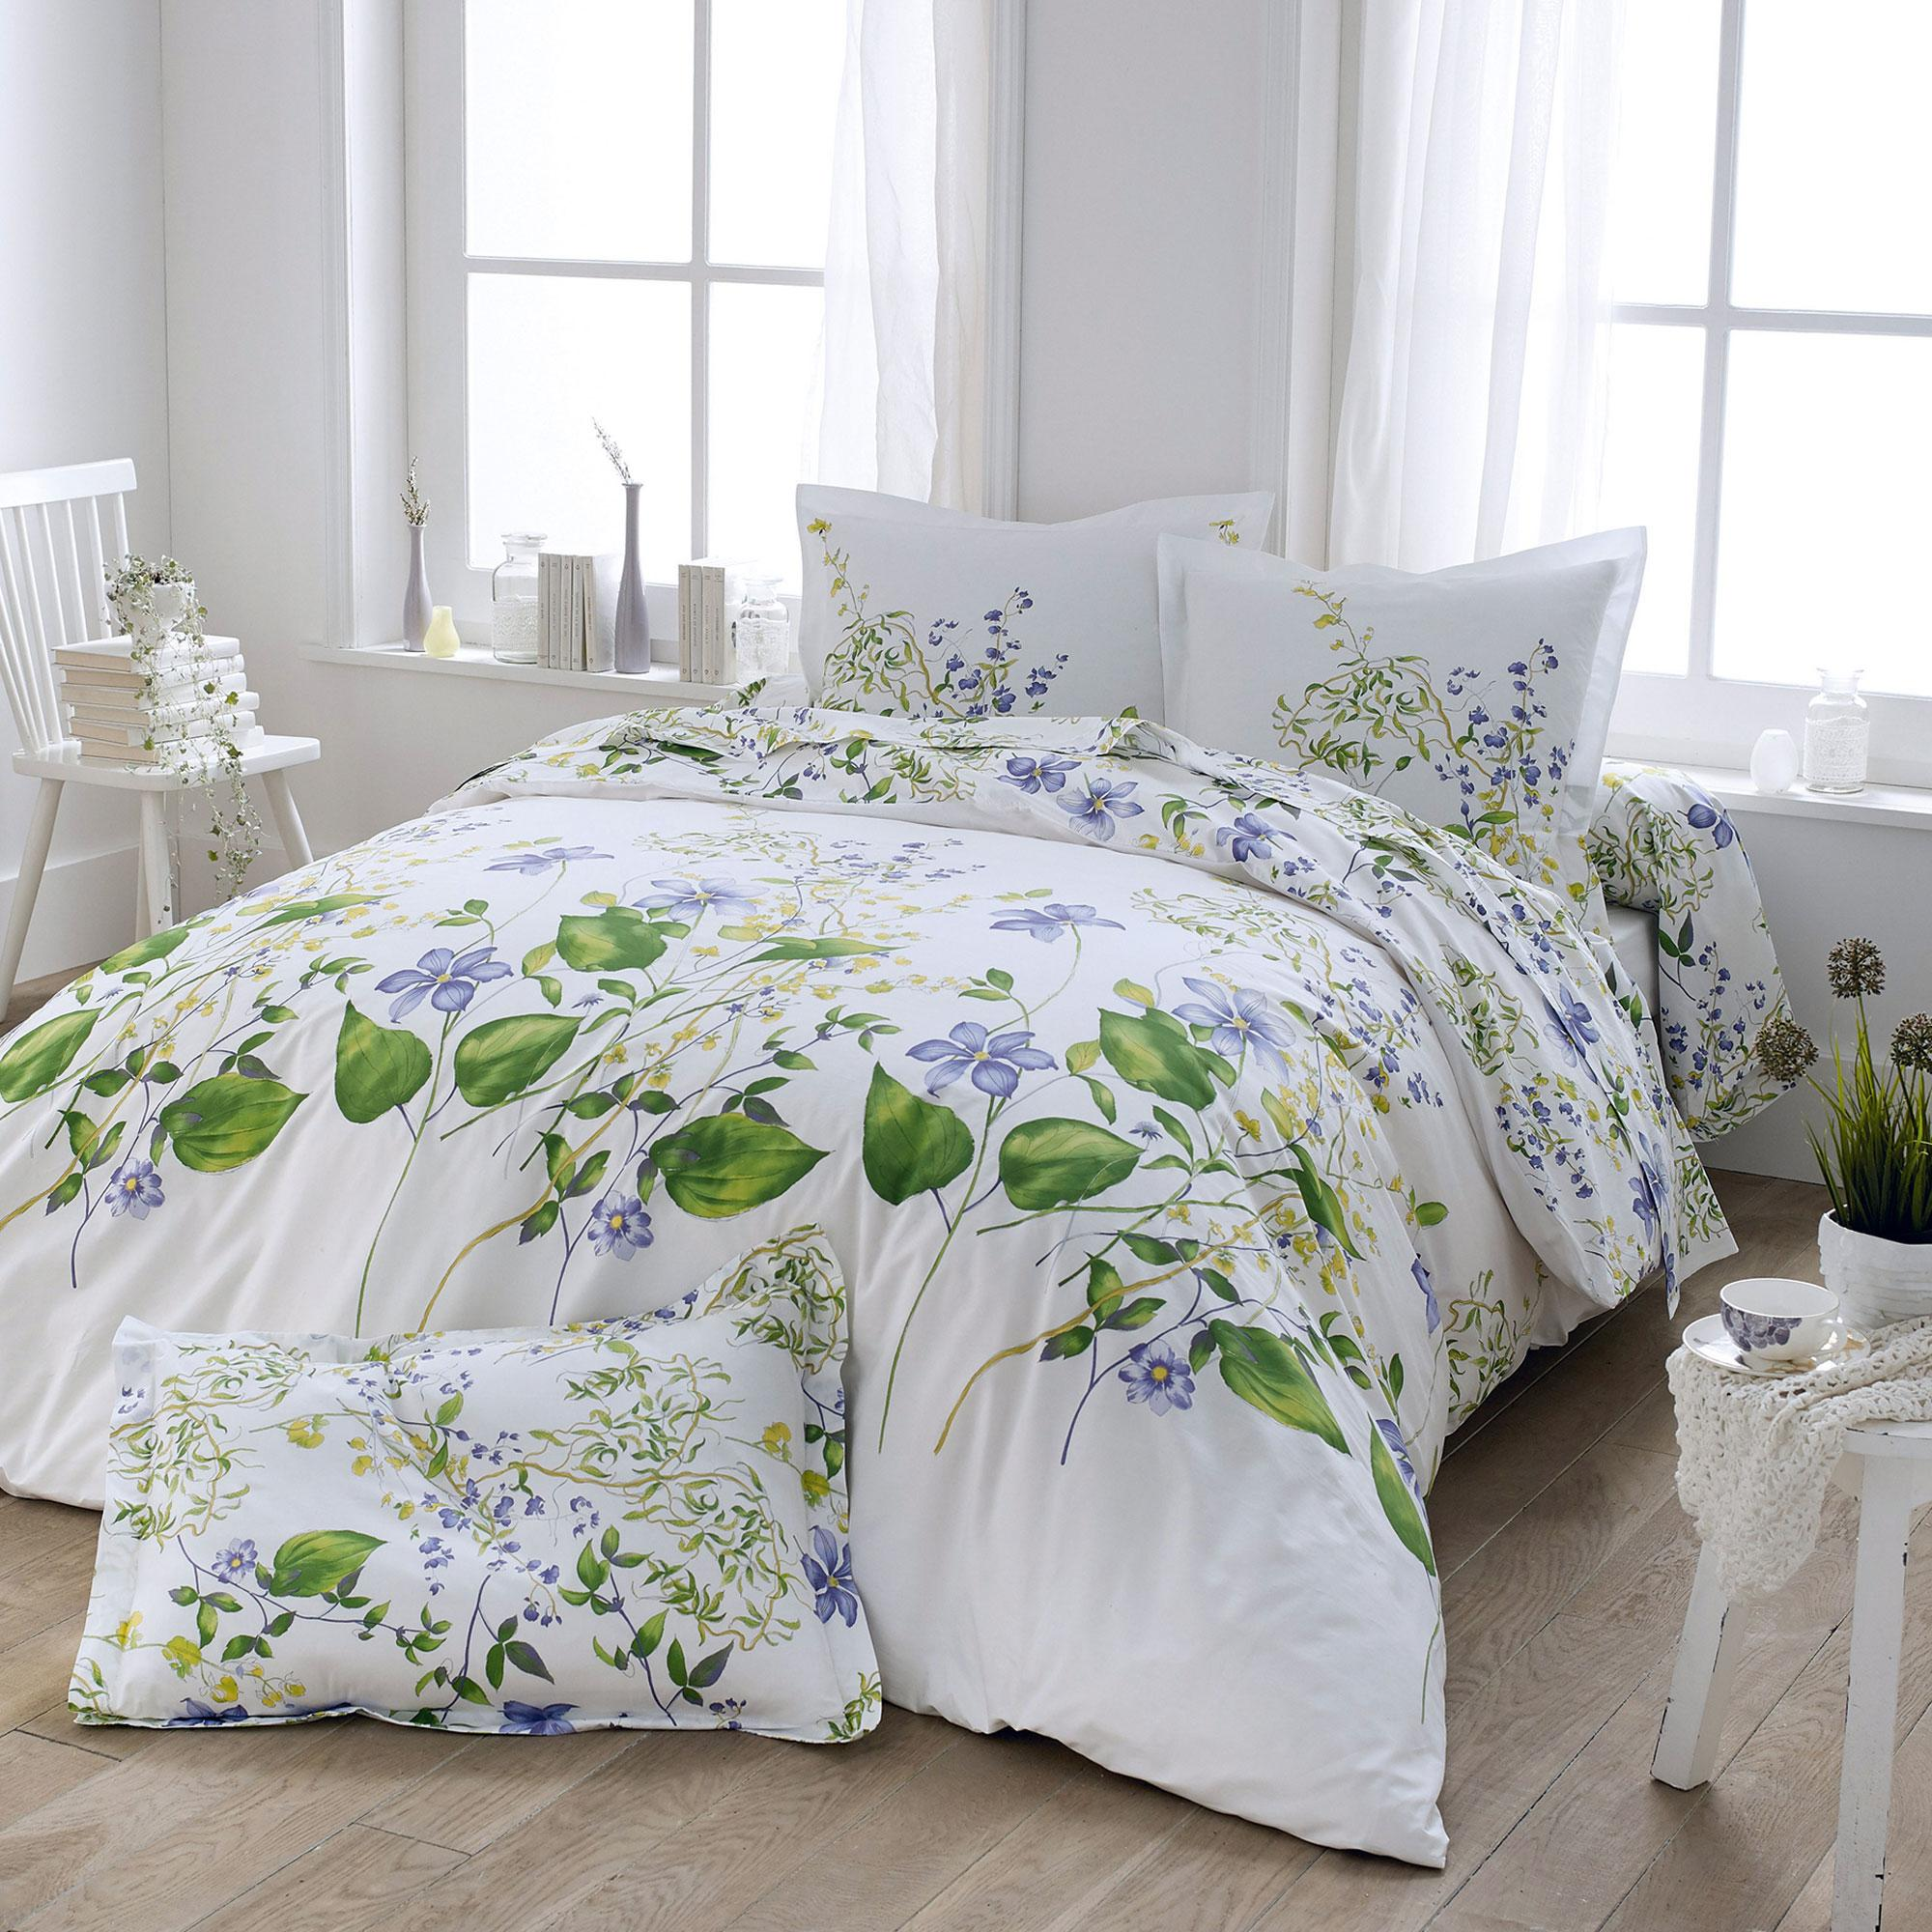 housse de couette 240x220 cm percale pur coton grace ebay. Black Bedroom Furniture Sets. Home Design Ideas